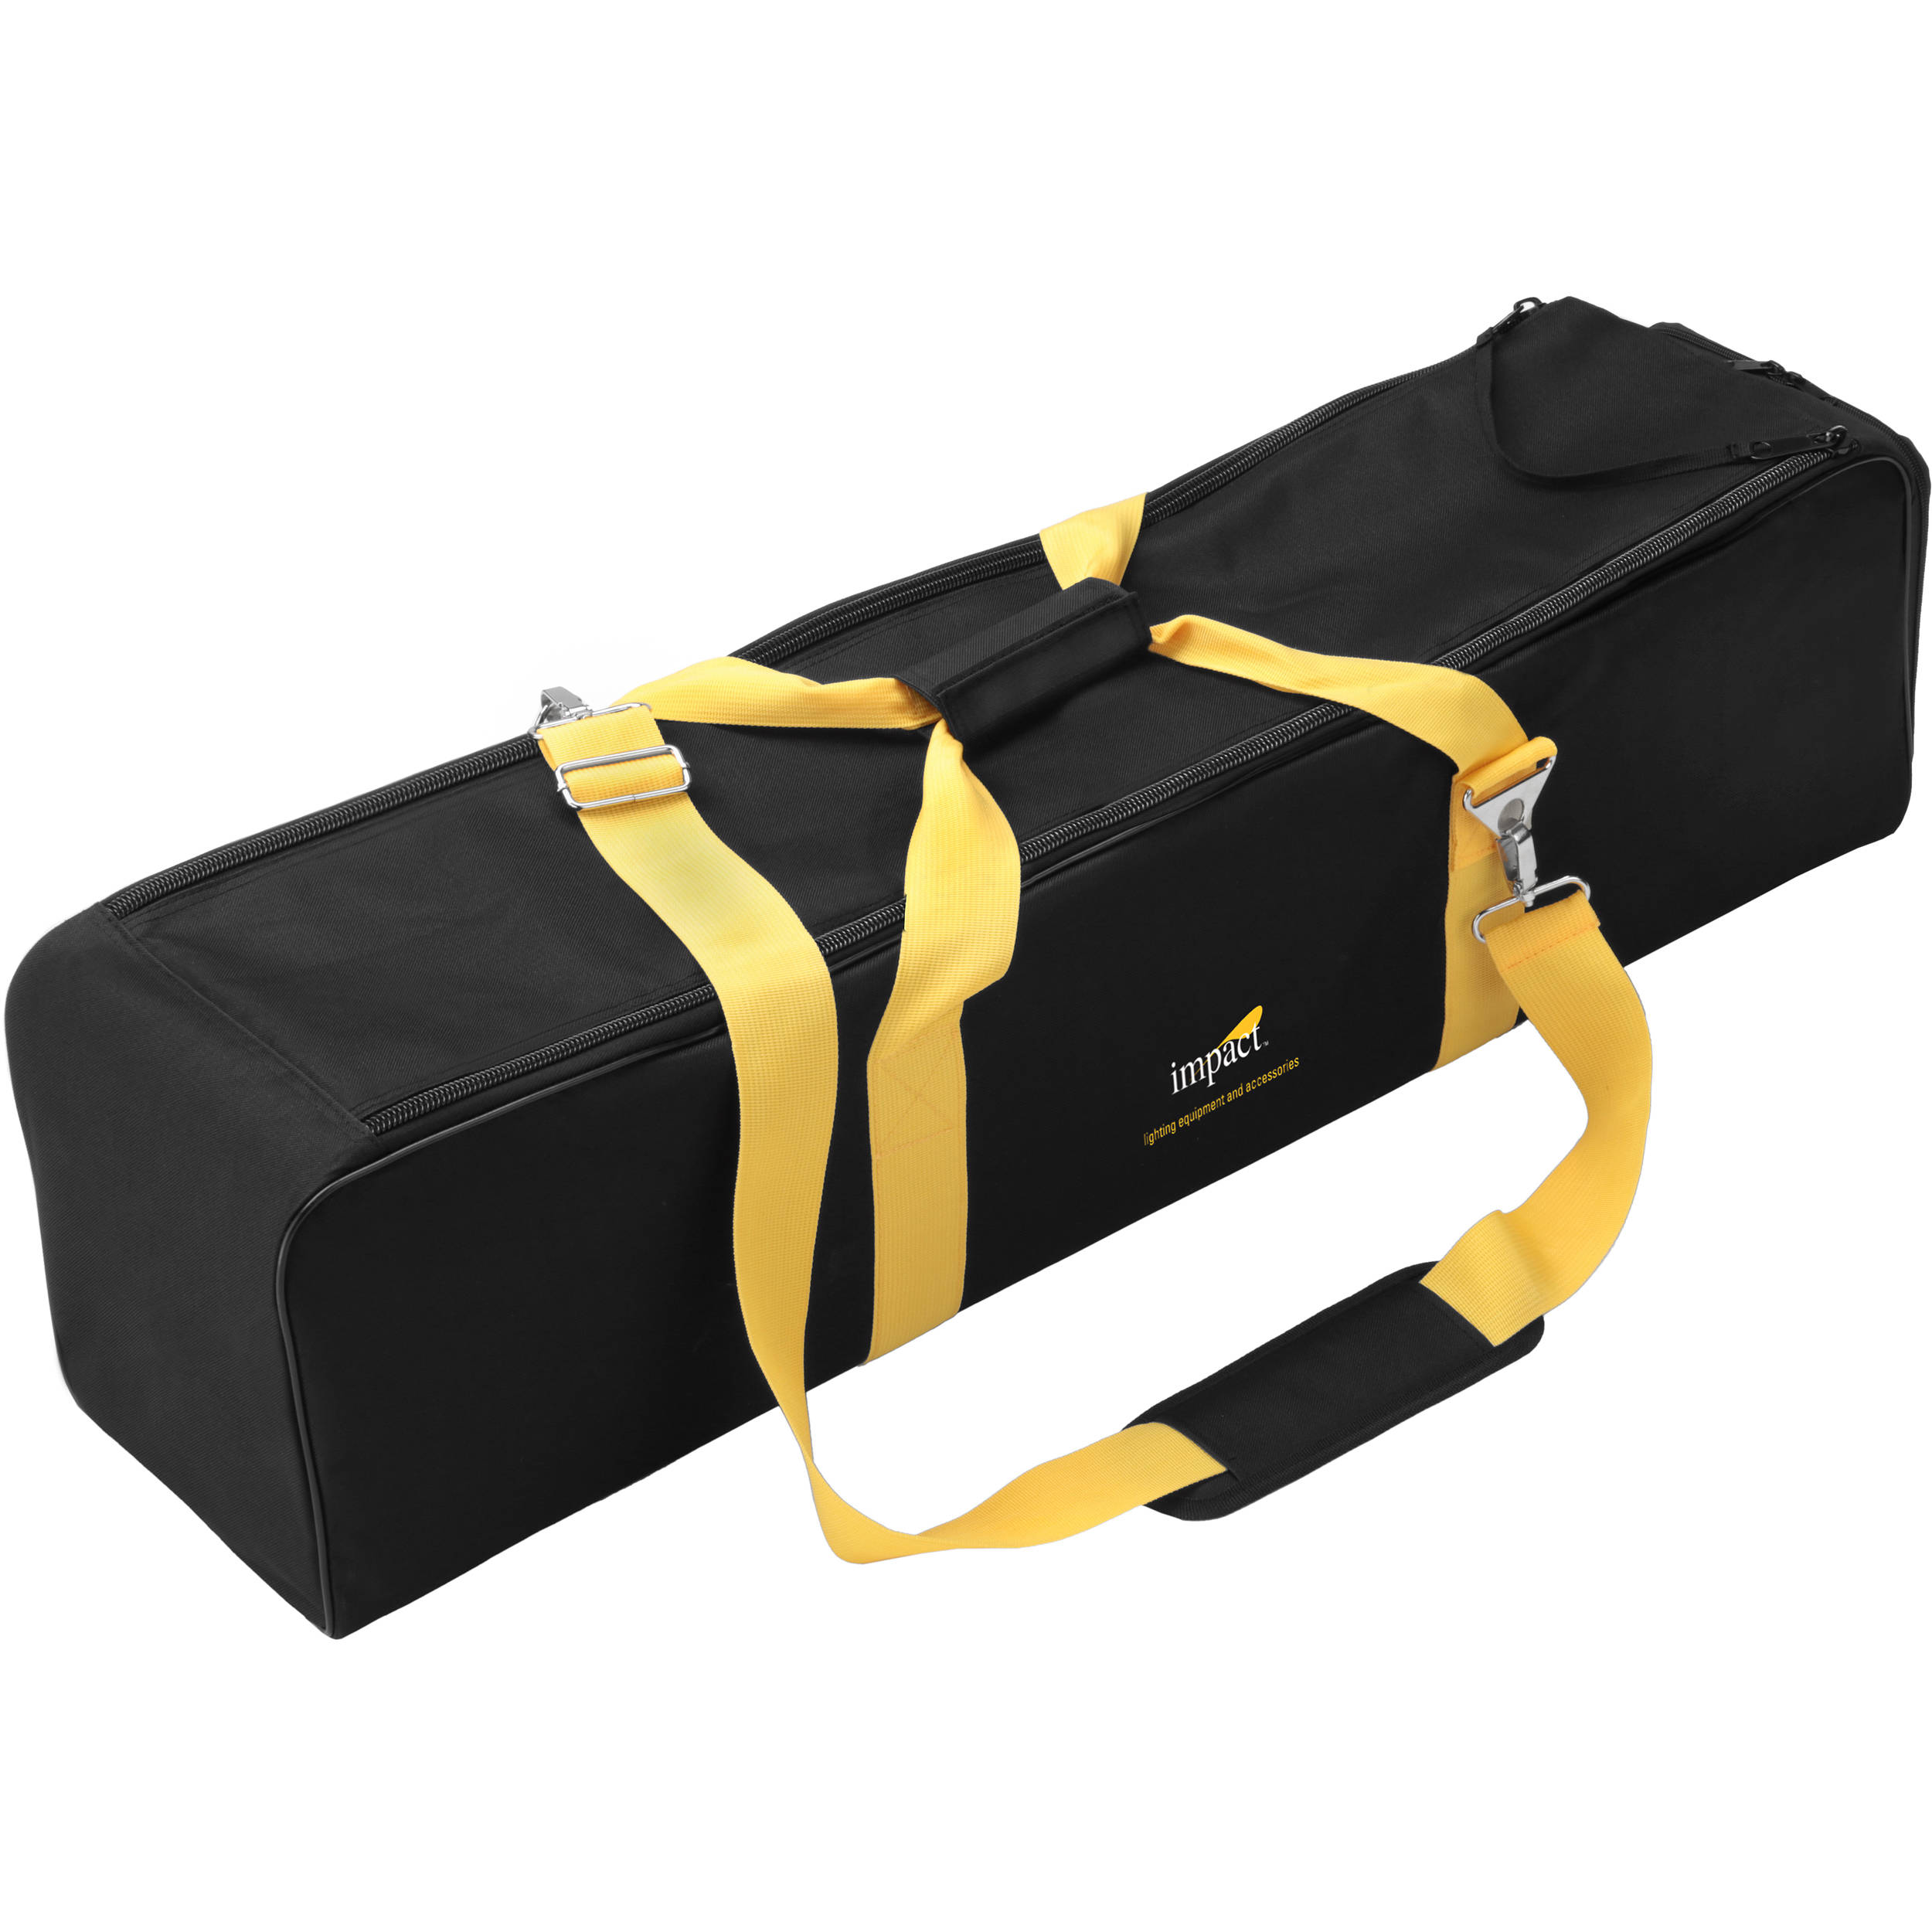 Impact Light Kit Bag 3 Holds 2 Monolights With Stands And Accessories